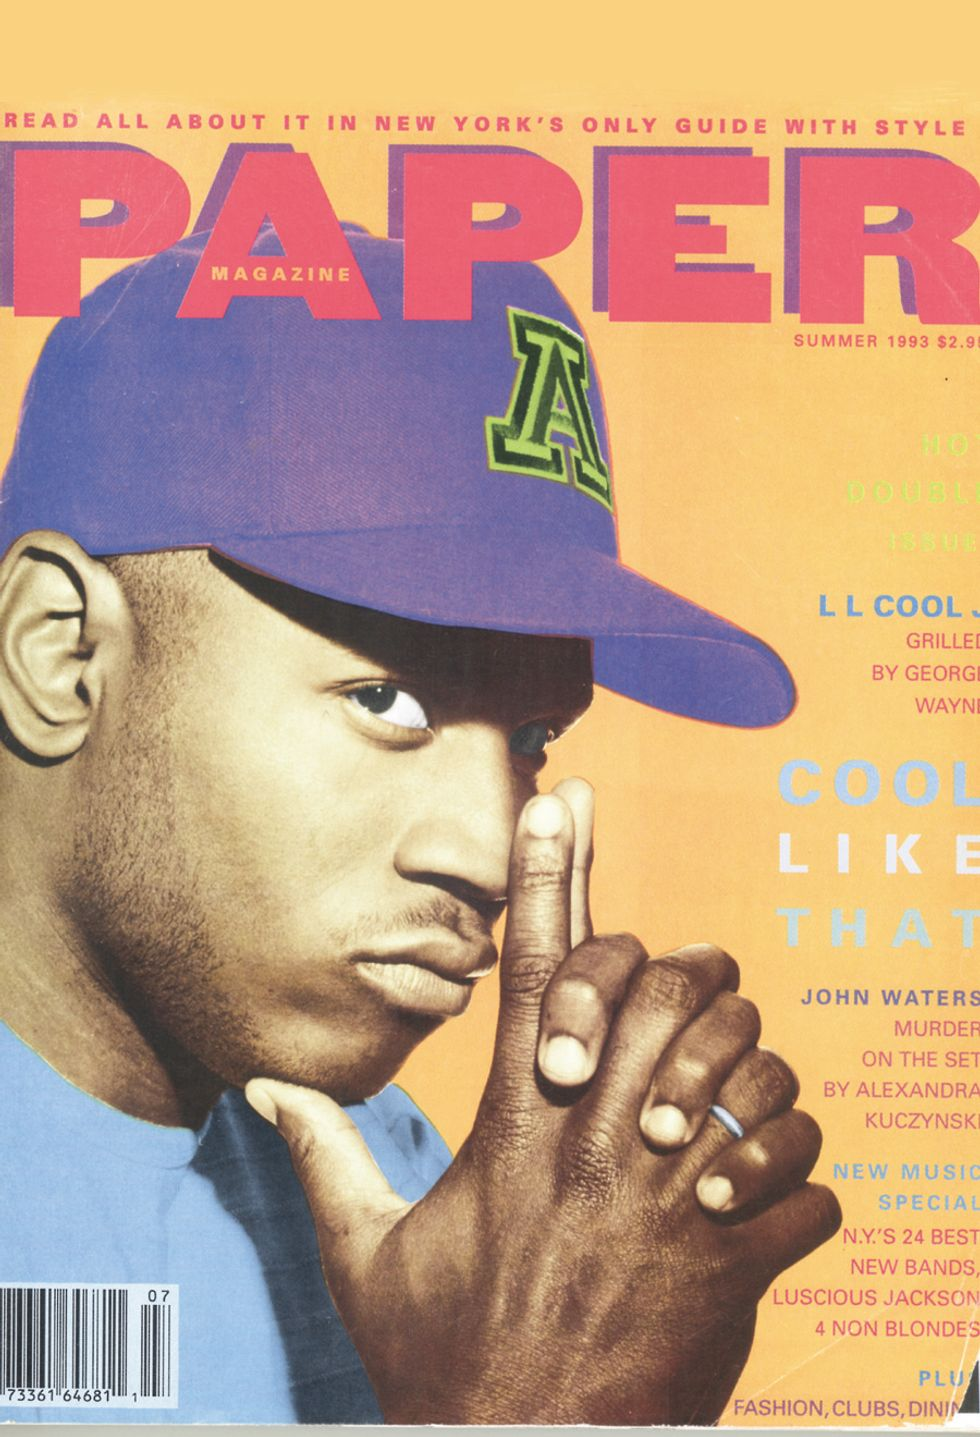 Grammy Host LL Cool J Gets Grilled By George Wayne: From the PAPER Archives